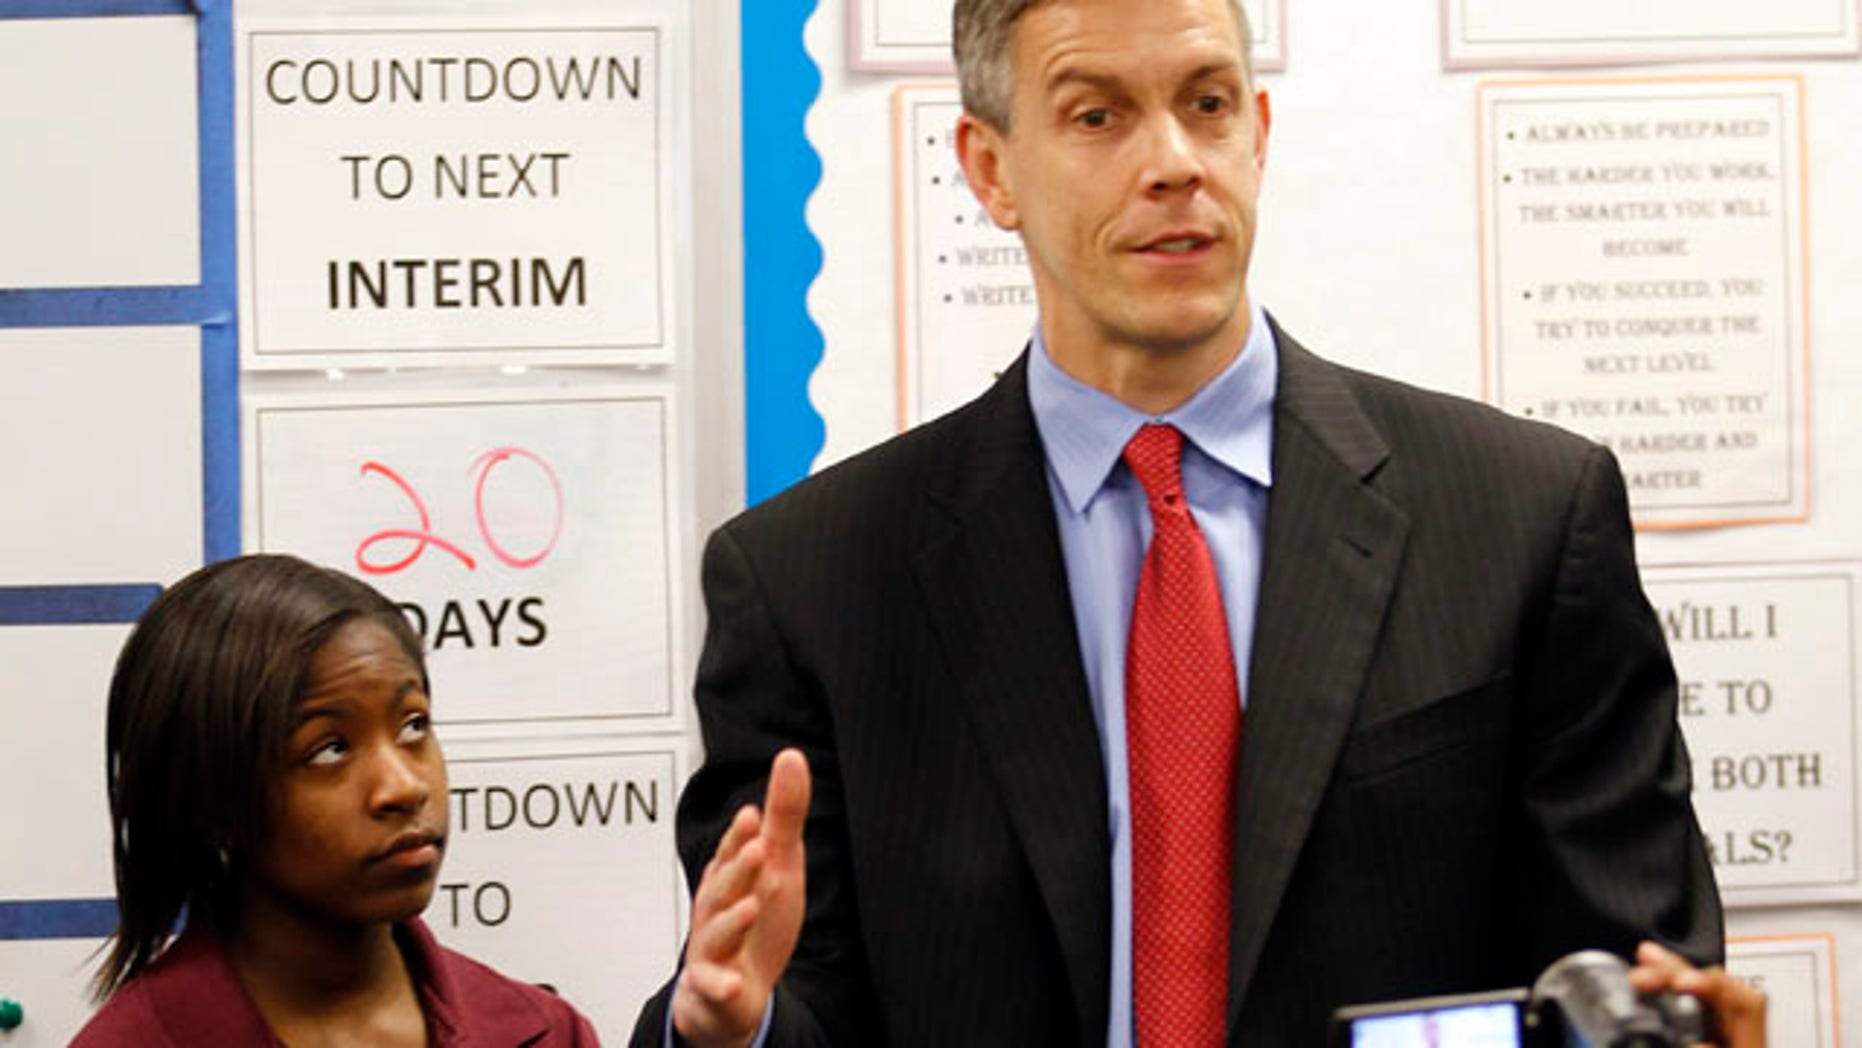 FILE - In this April 15, 2011 file photo, student Faith Brown, left, listens as U.S. Department of Education Secretary Arne Duncan speaks to students during tour the Charles A. Tindley Accelerated School in Indianapolis. Duncan says he will announce a new waiver system Monday, Aug. 8, 2011, to give schools a break from student testing mandates in the federal No Child Left Behind law. (AP Photo/Michael Conroy, File)